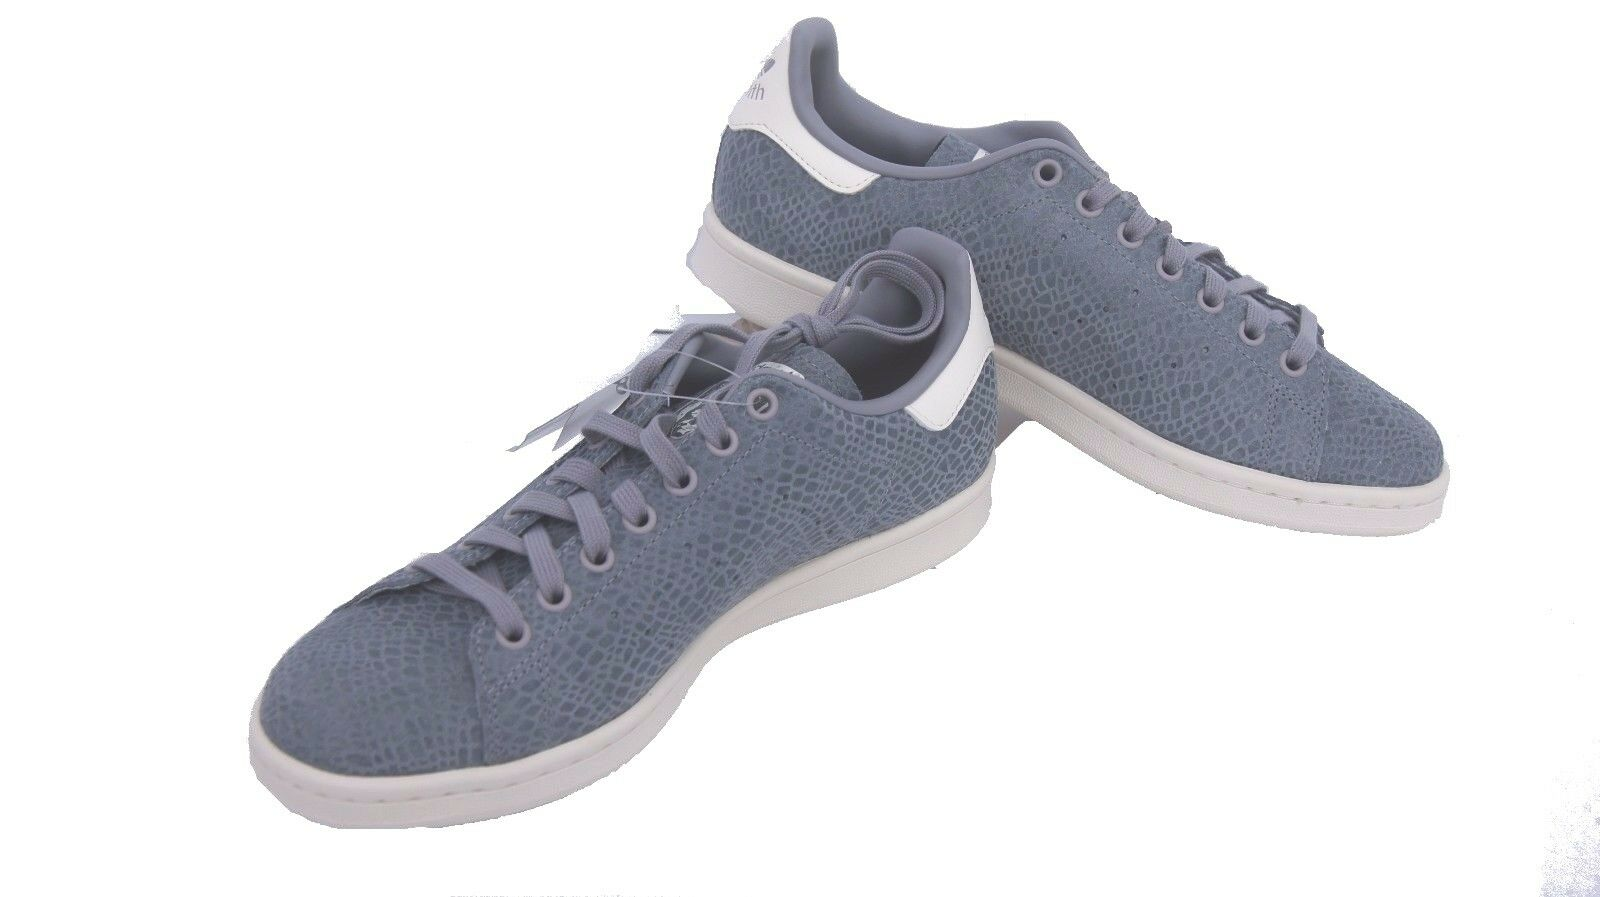 ADIDAS Stan Smith shoes LtOnix Light Onix Originals NIB Size 9, 9.5, 10